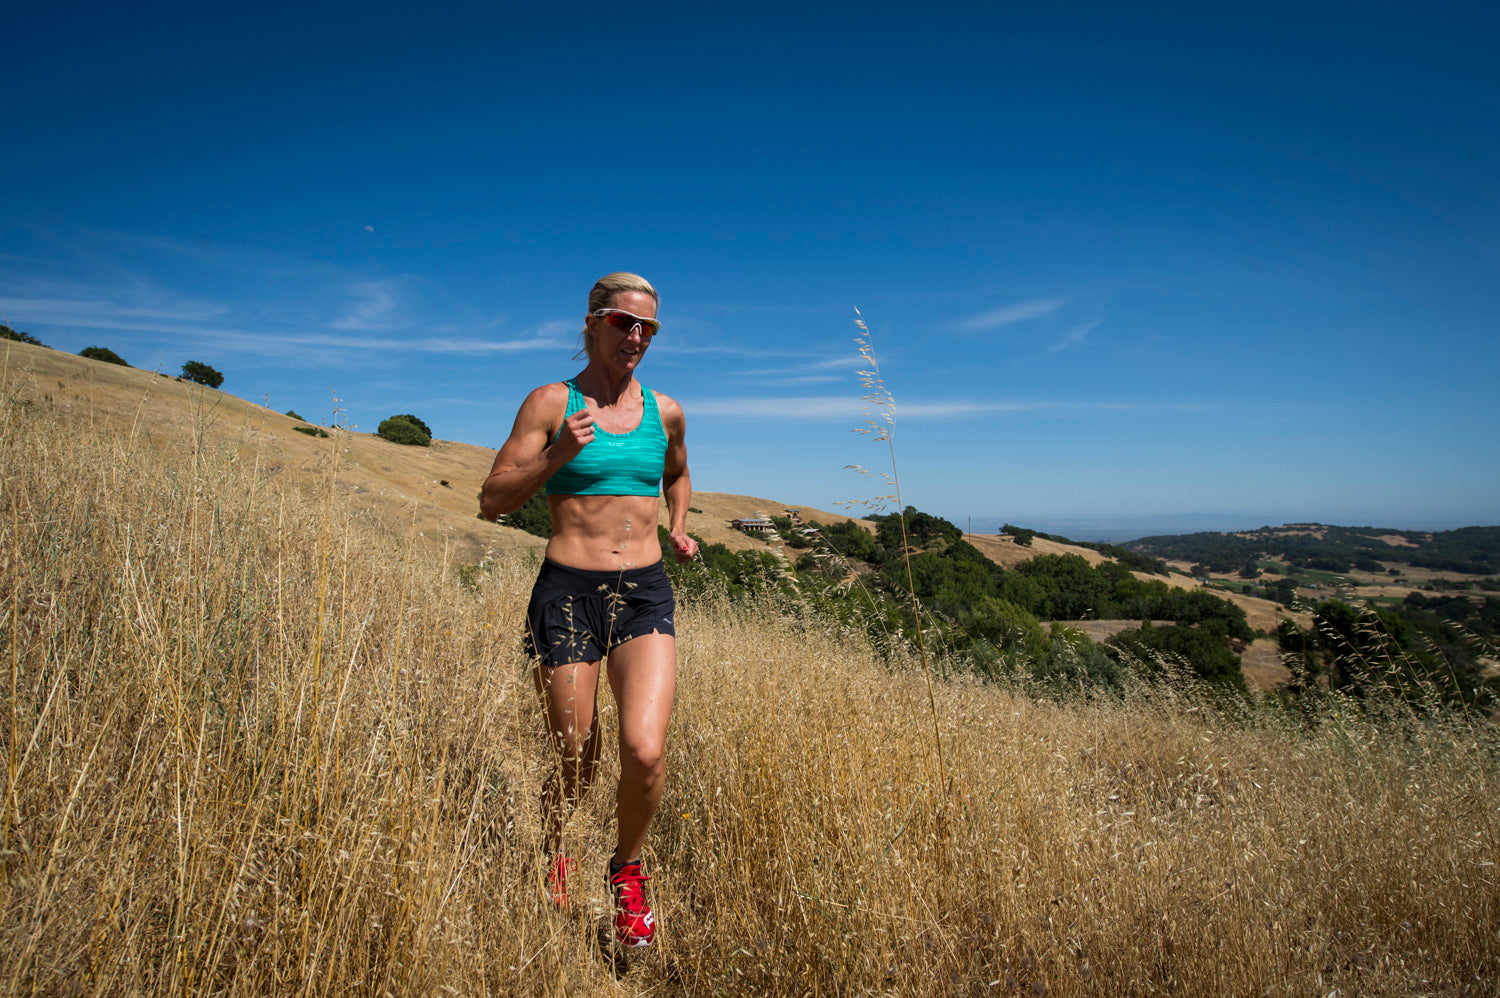 Work Out with Triathlete Star Meredith Kessler: Interval Running Workout